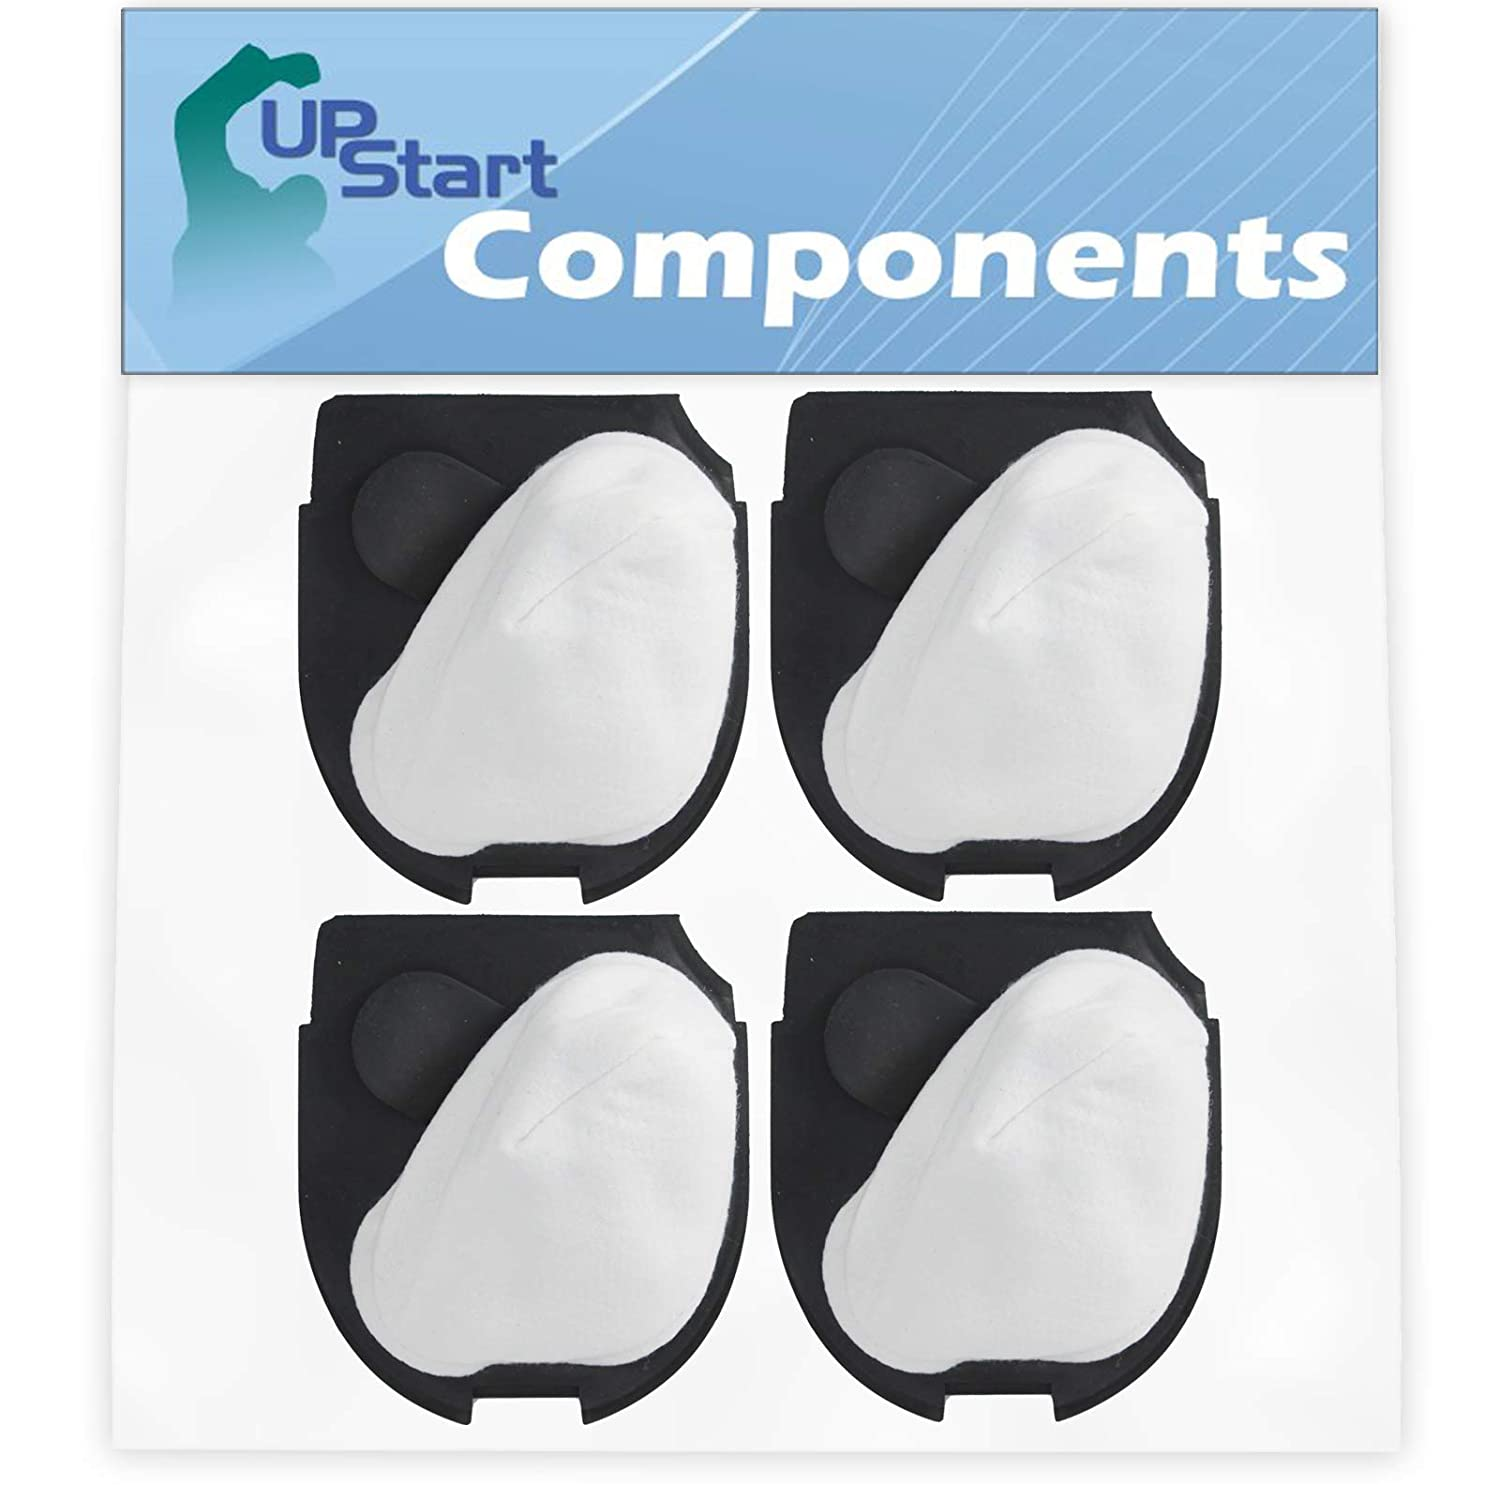 4-Pack DCF-11 Filter Replacement for Eureka Quick UP 71B, 71, 41A, 70A, 71A, 71AV & Eureka 39657, Eureka DCF 11 Vacuum Cleaners - Compatible with Eureka DCF-11 62558A Filter